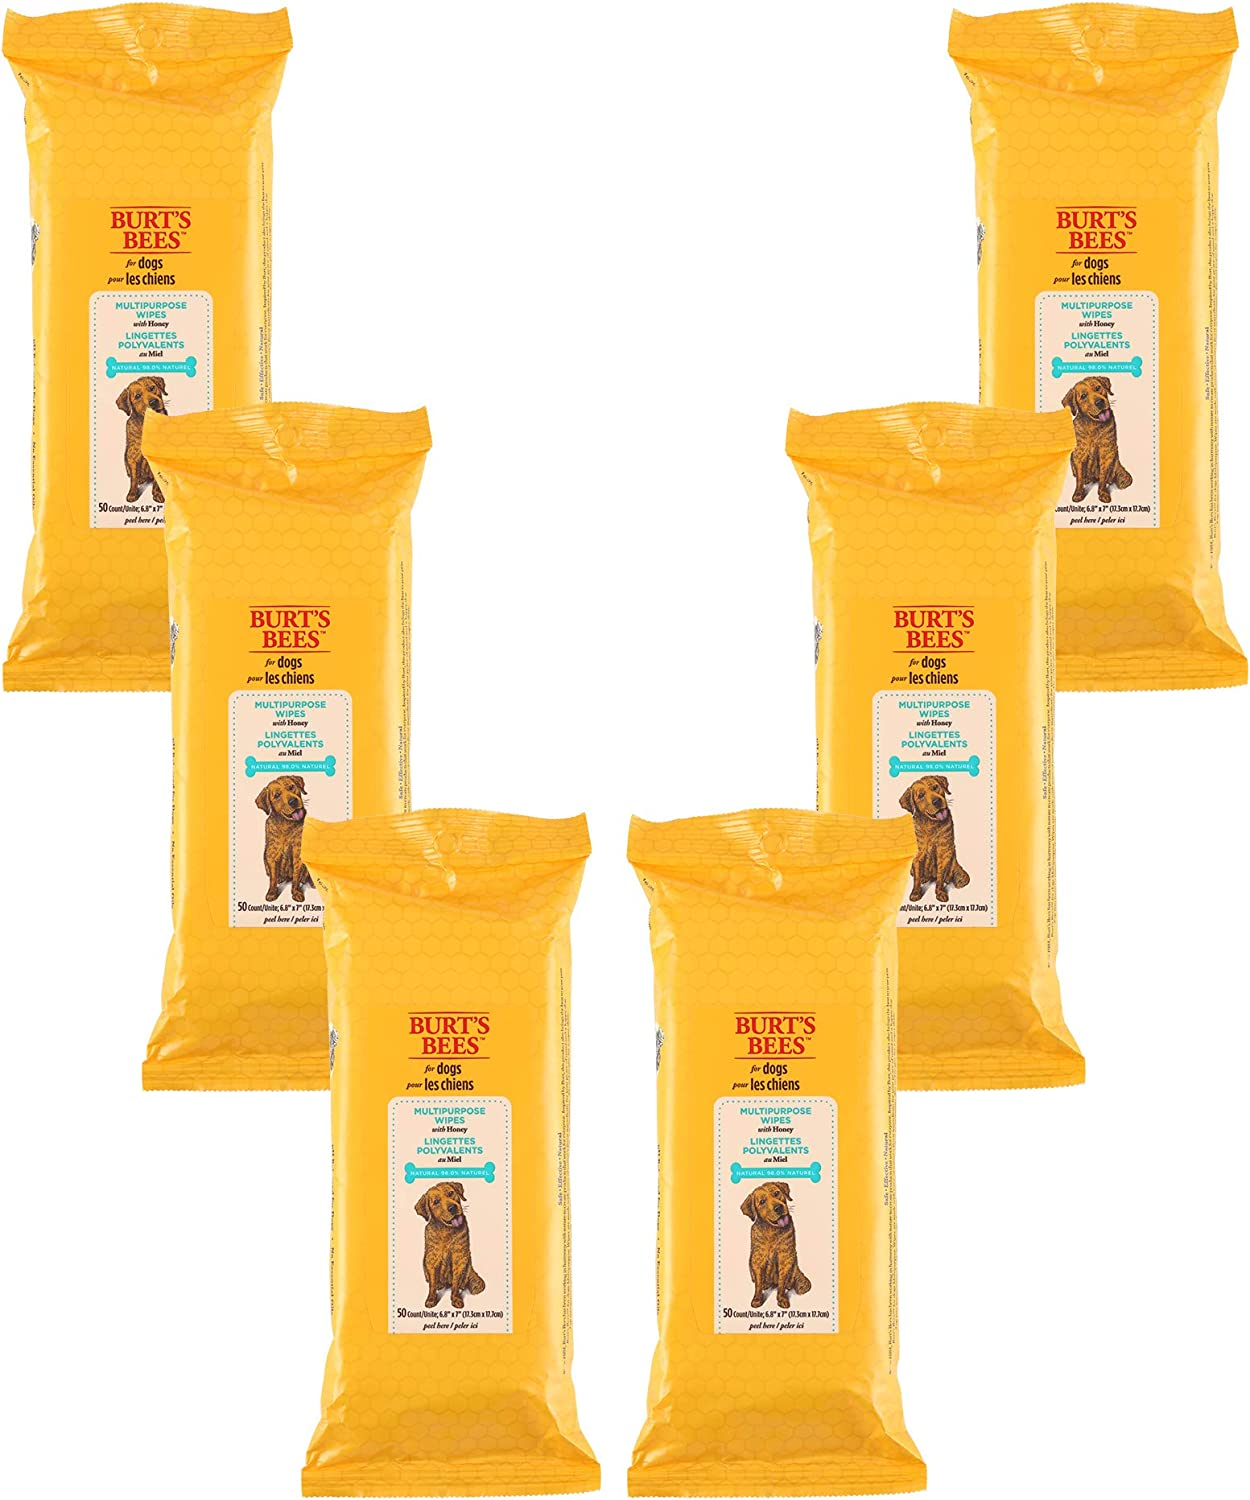 Burt's Bees for Dogs Multipurpose Grooming Wipes | Puppy & Dog Wipes for Cleaning, 50Count - 6 Pack